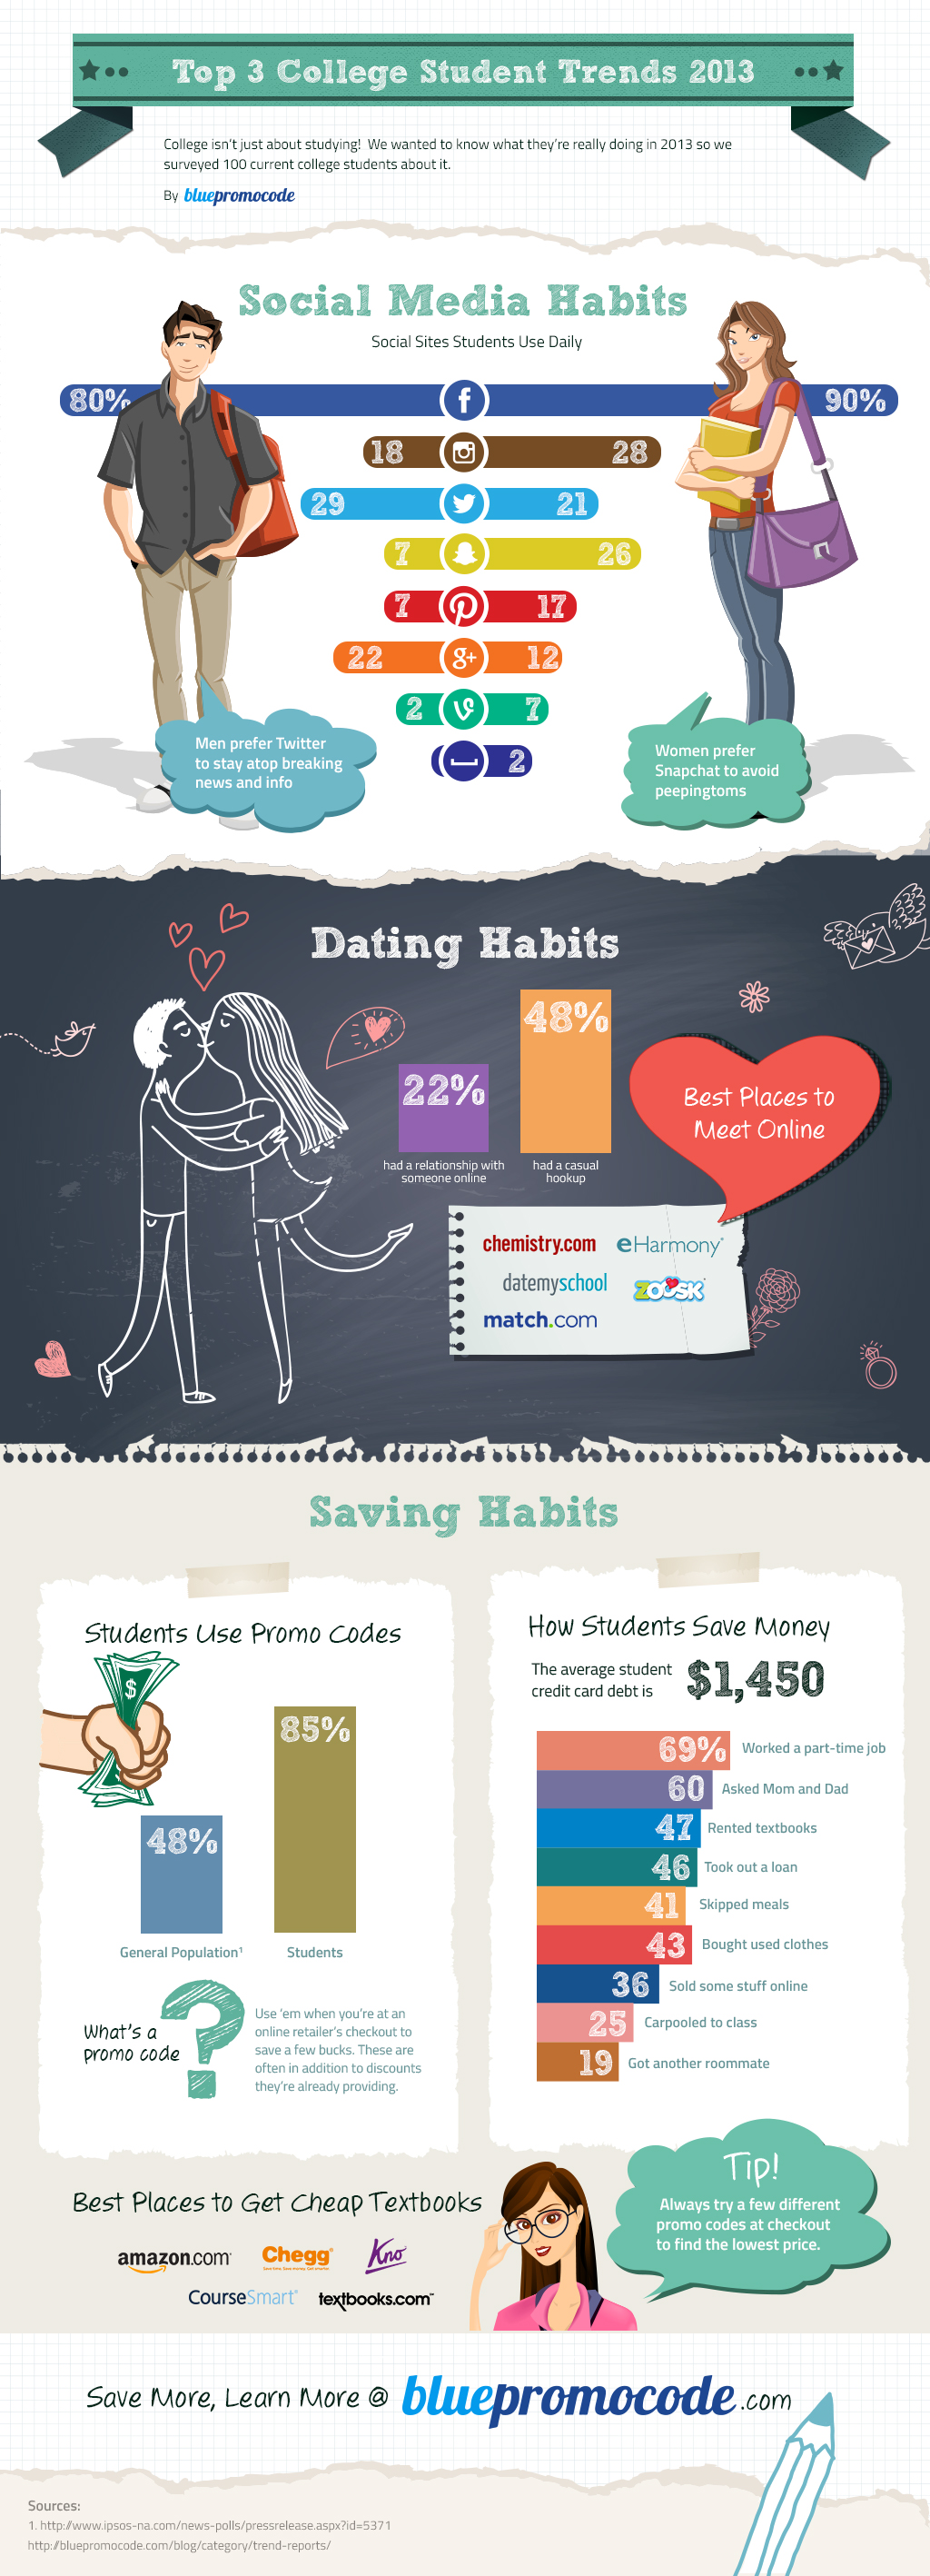 Dating And Saving Habits For Students